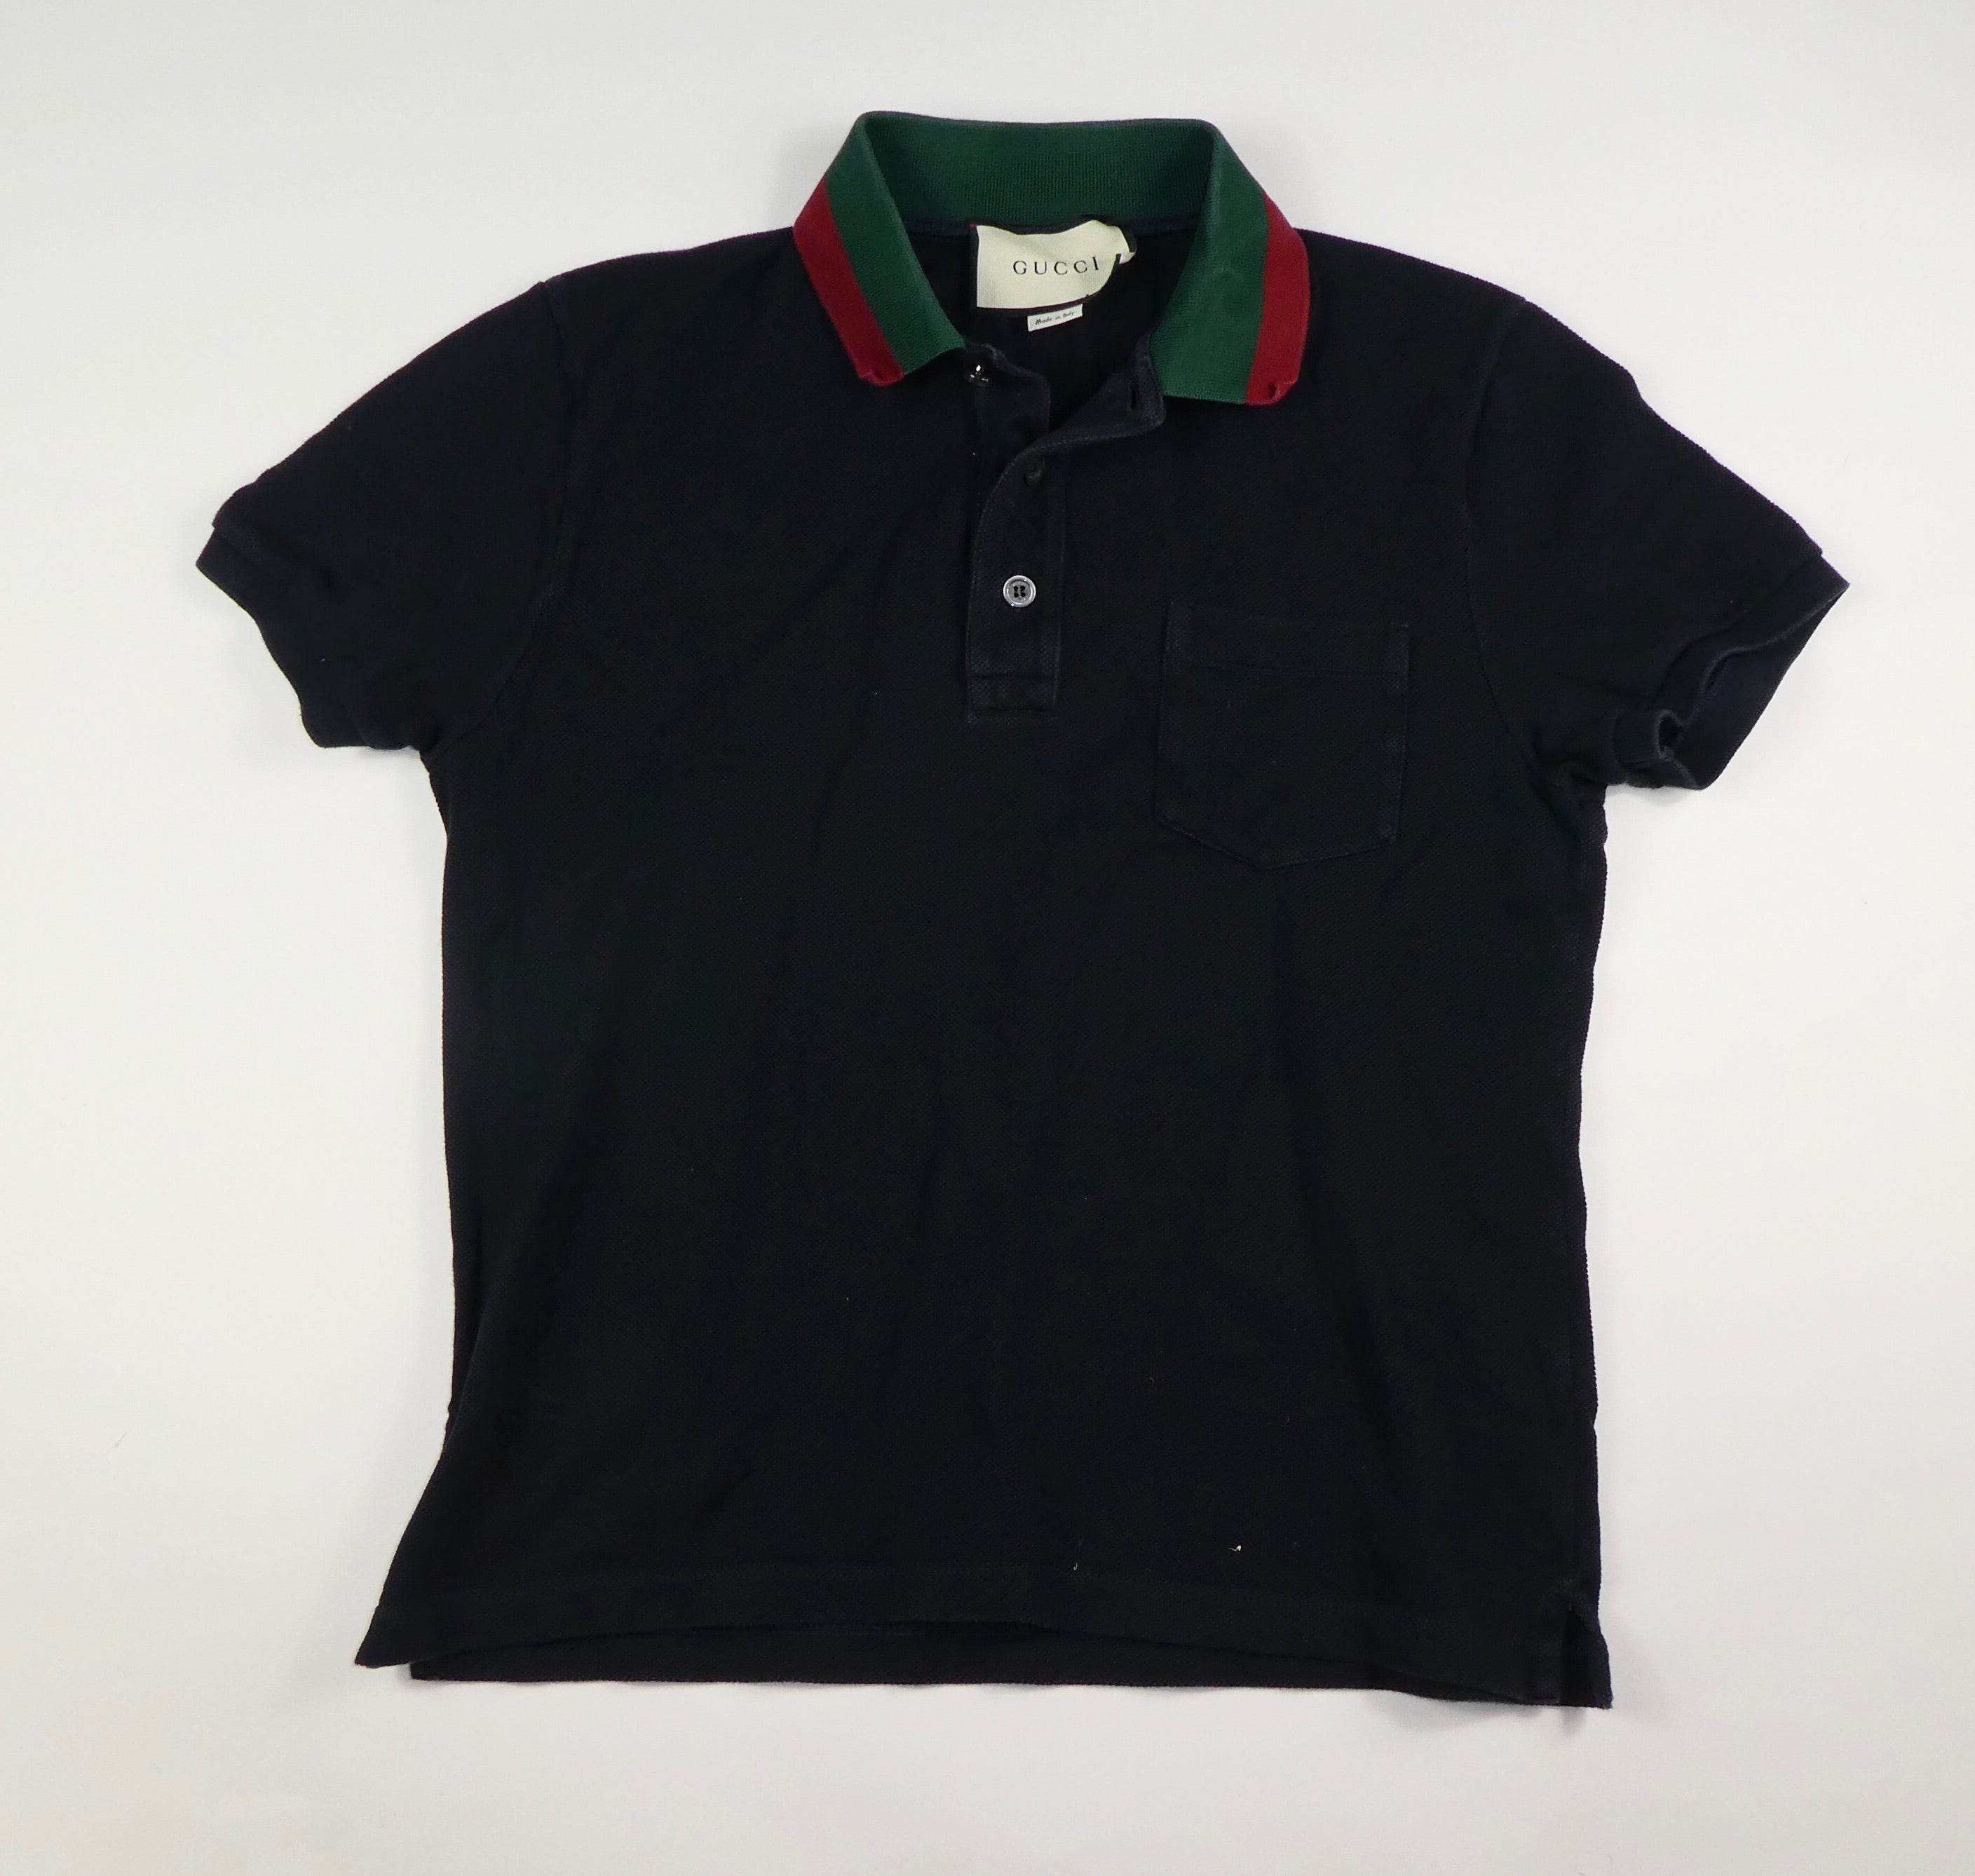 Gucci Collar Polo Shirt (black) - Small